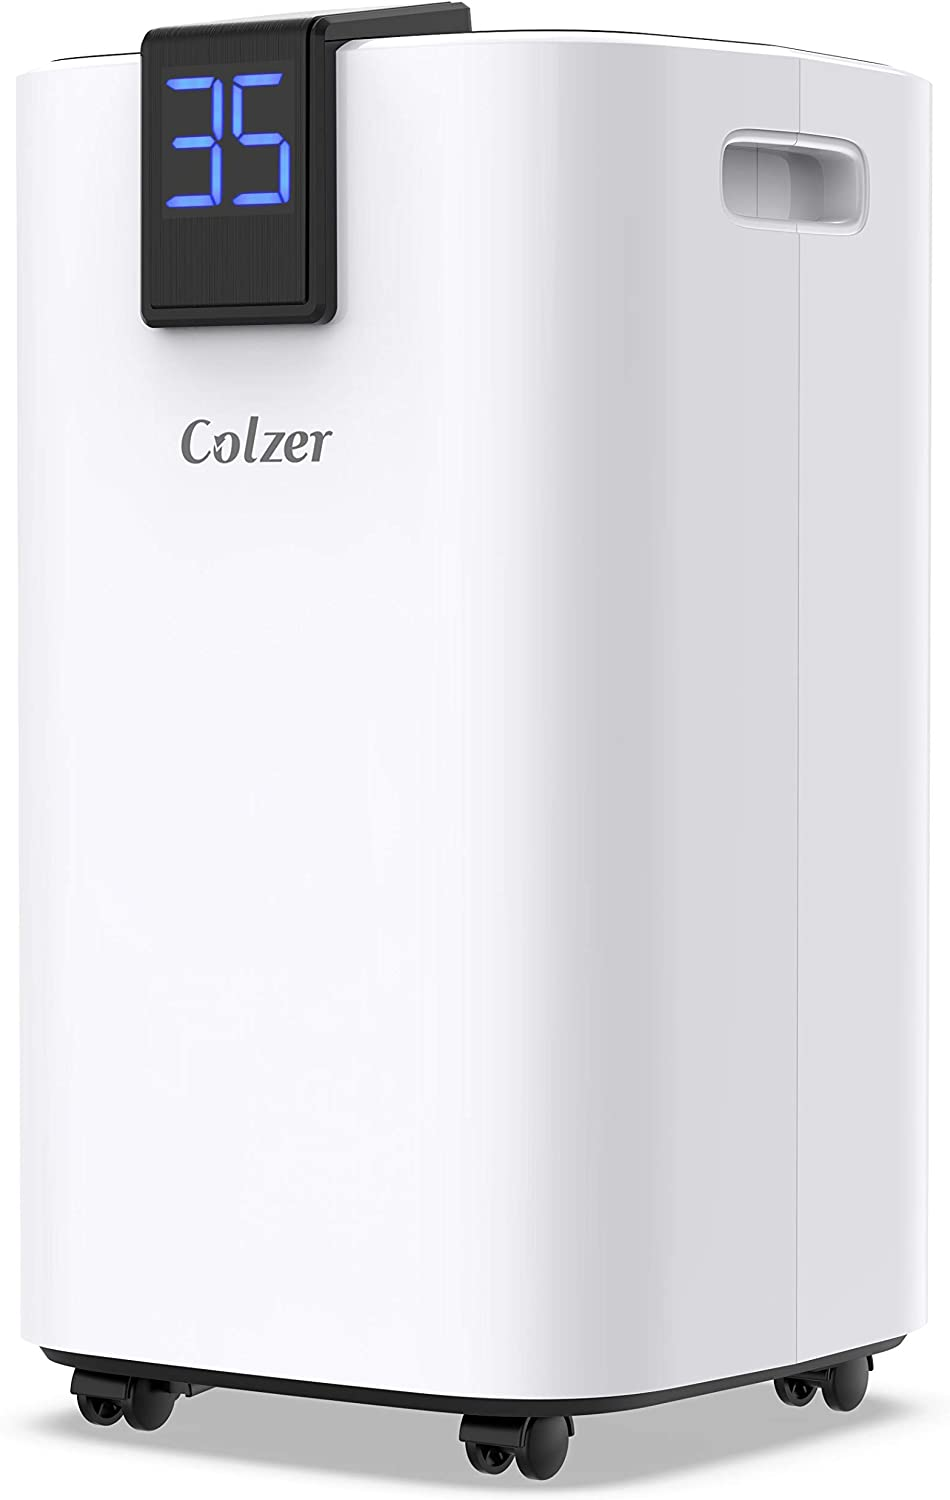 COLZER 30 Pints 1,500 SQ FT Home Dehumidifiers for Basements & Large Rooms, Large Removal Capacity with 5.3-Pint Water Bucket & Continuous Drain Hose for Self-draining